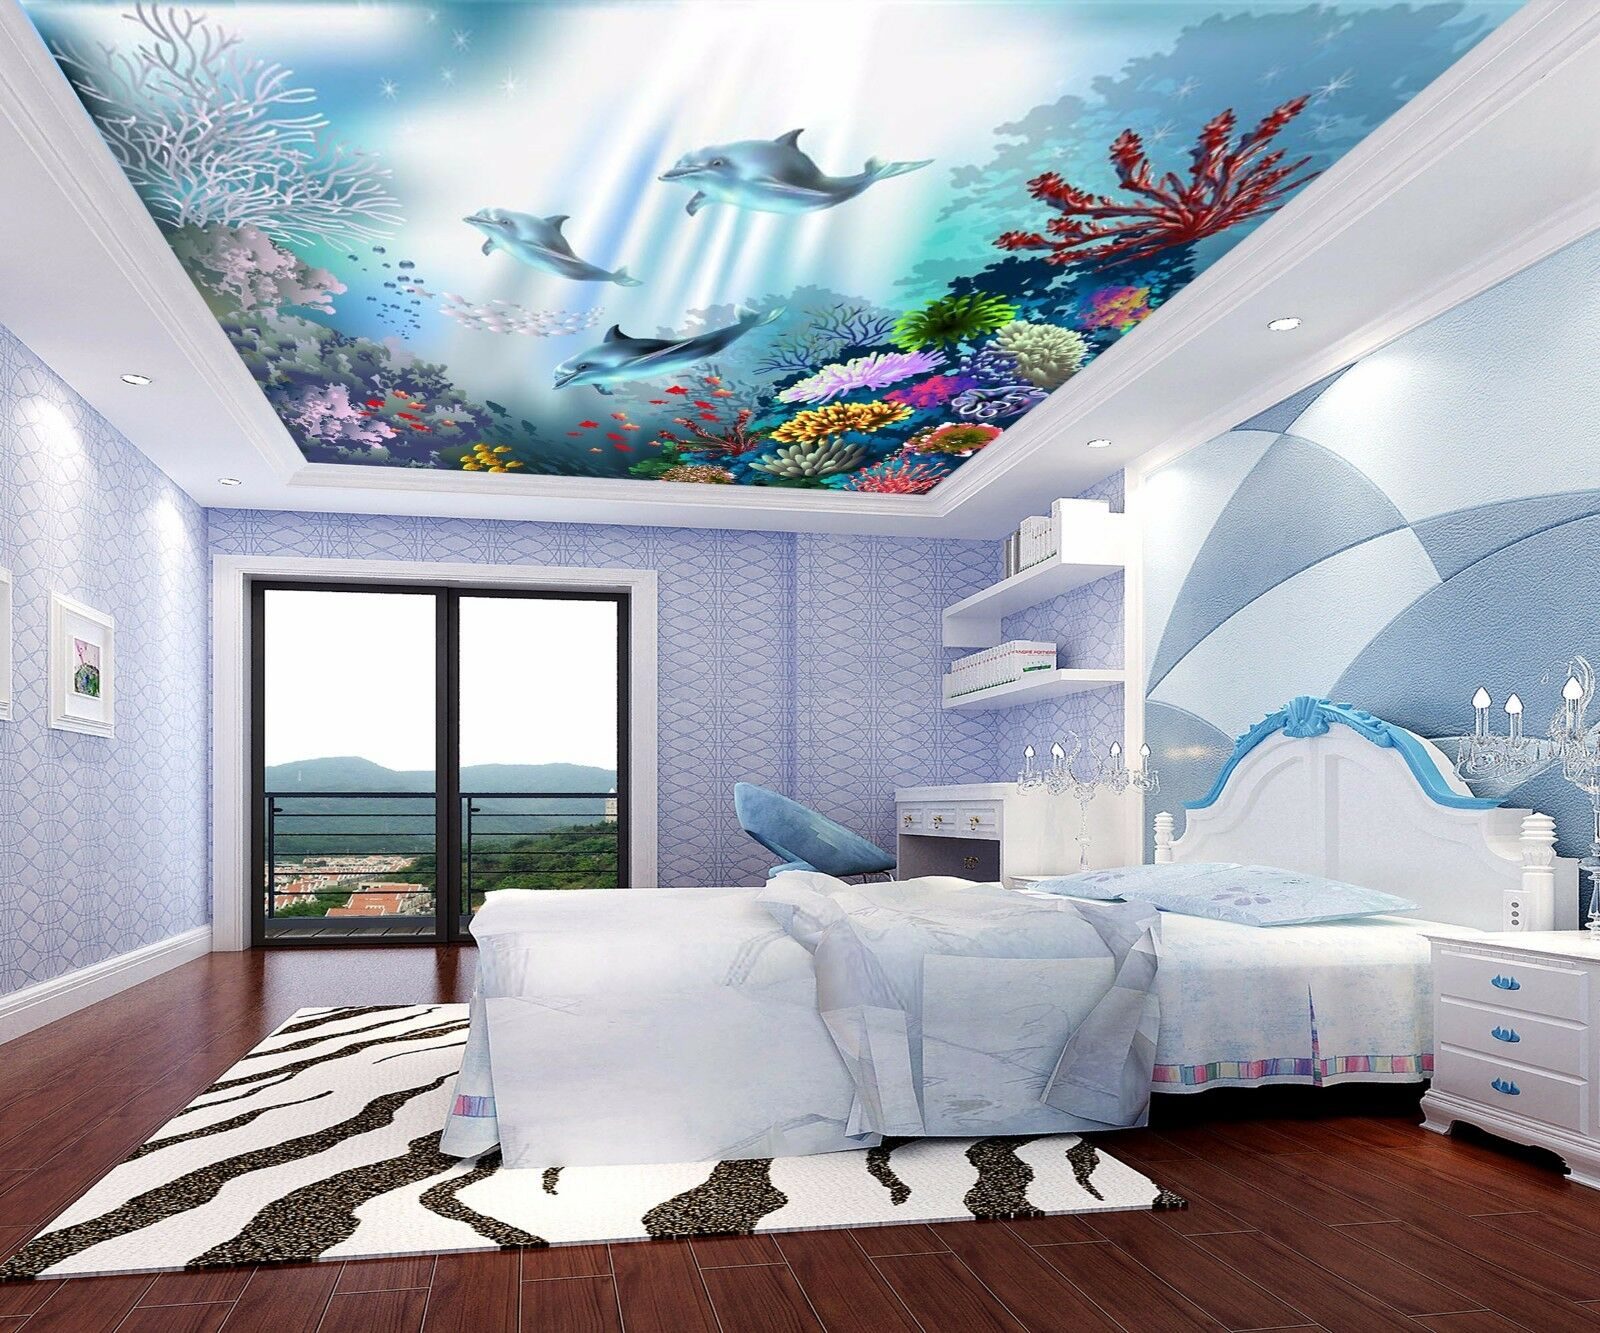 3D Pretty Coral 6 Ceiling WallPaper Murals Wall Print Decal Deco AJ WALLPAPER UK